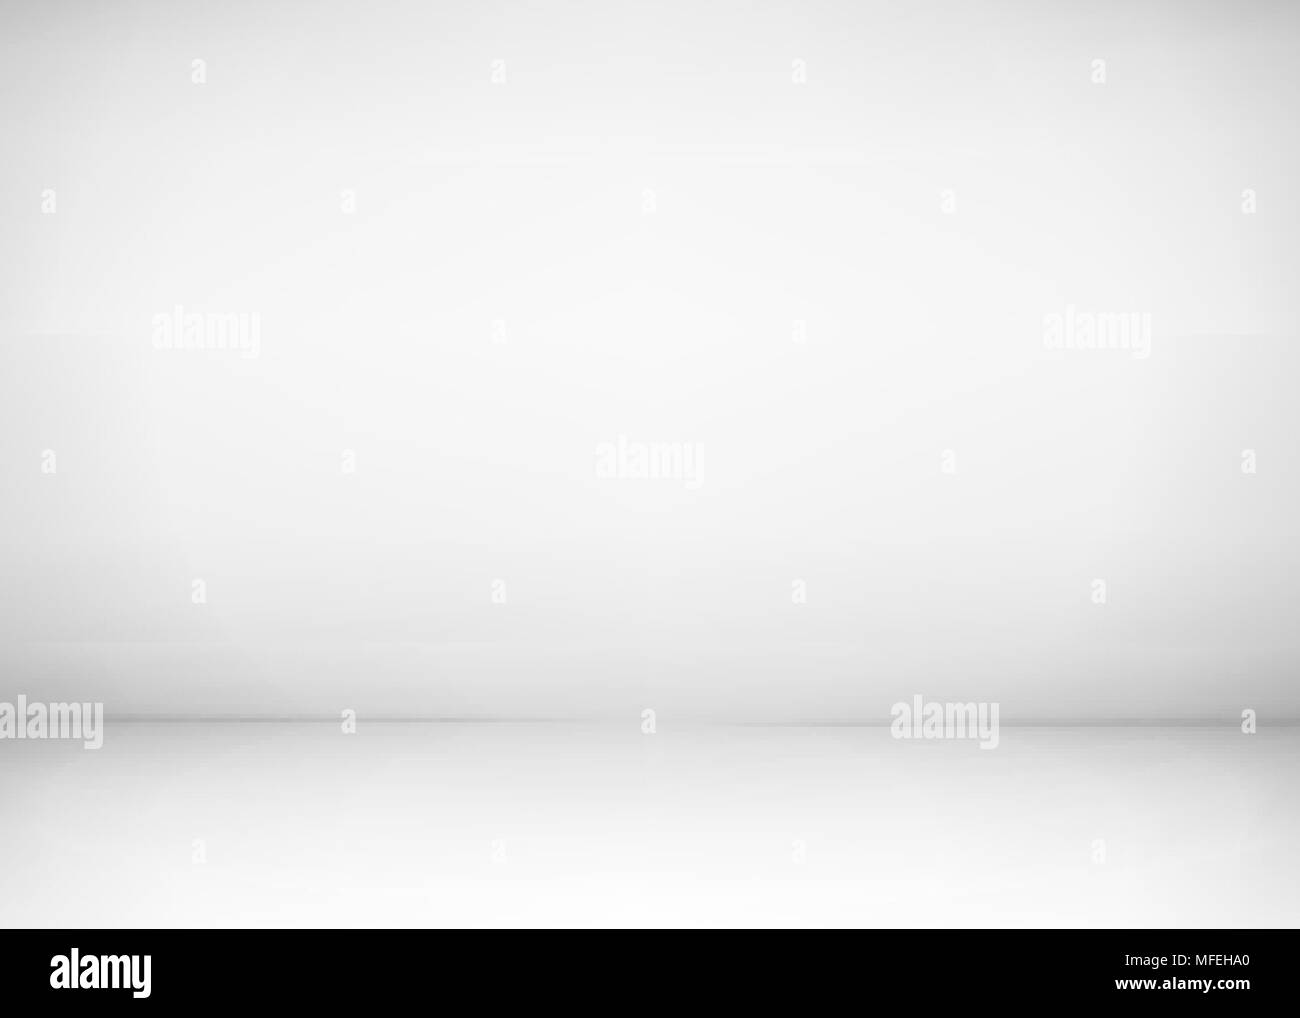 Empty studio room interior. White wall and floor background. Clean workshop for photography or presentation. Vector illustration - Stock Vector